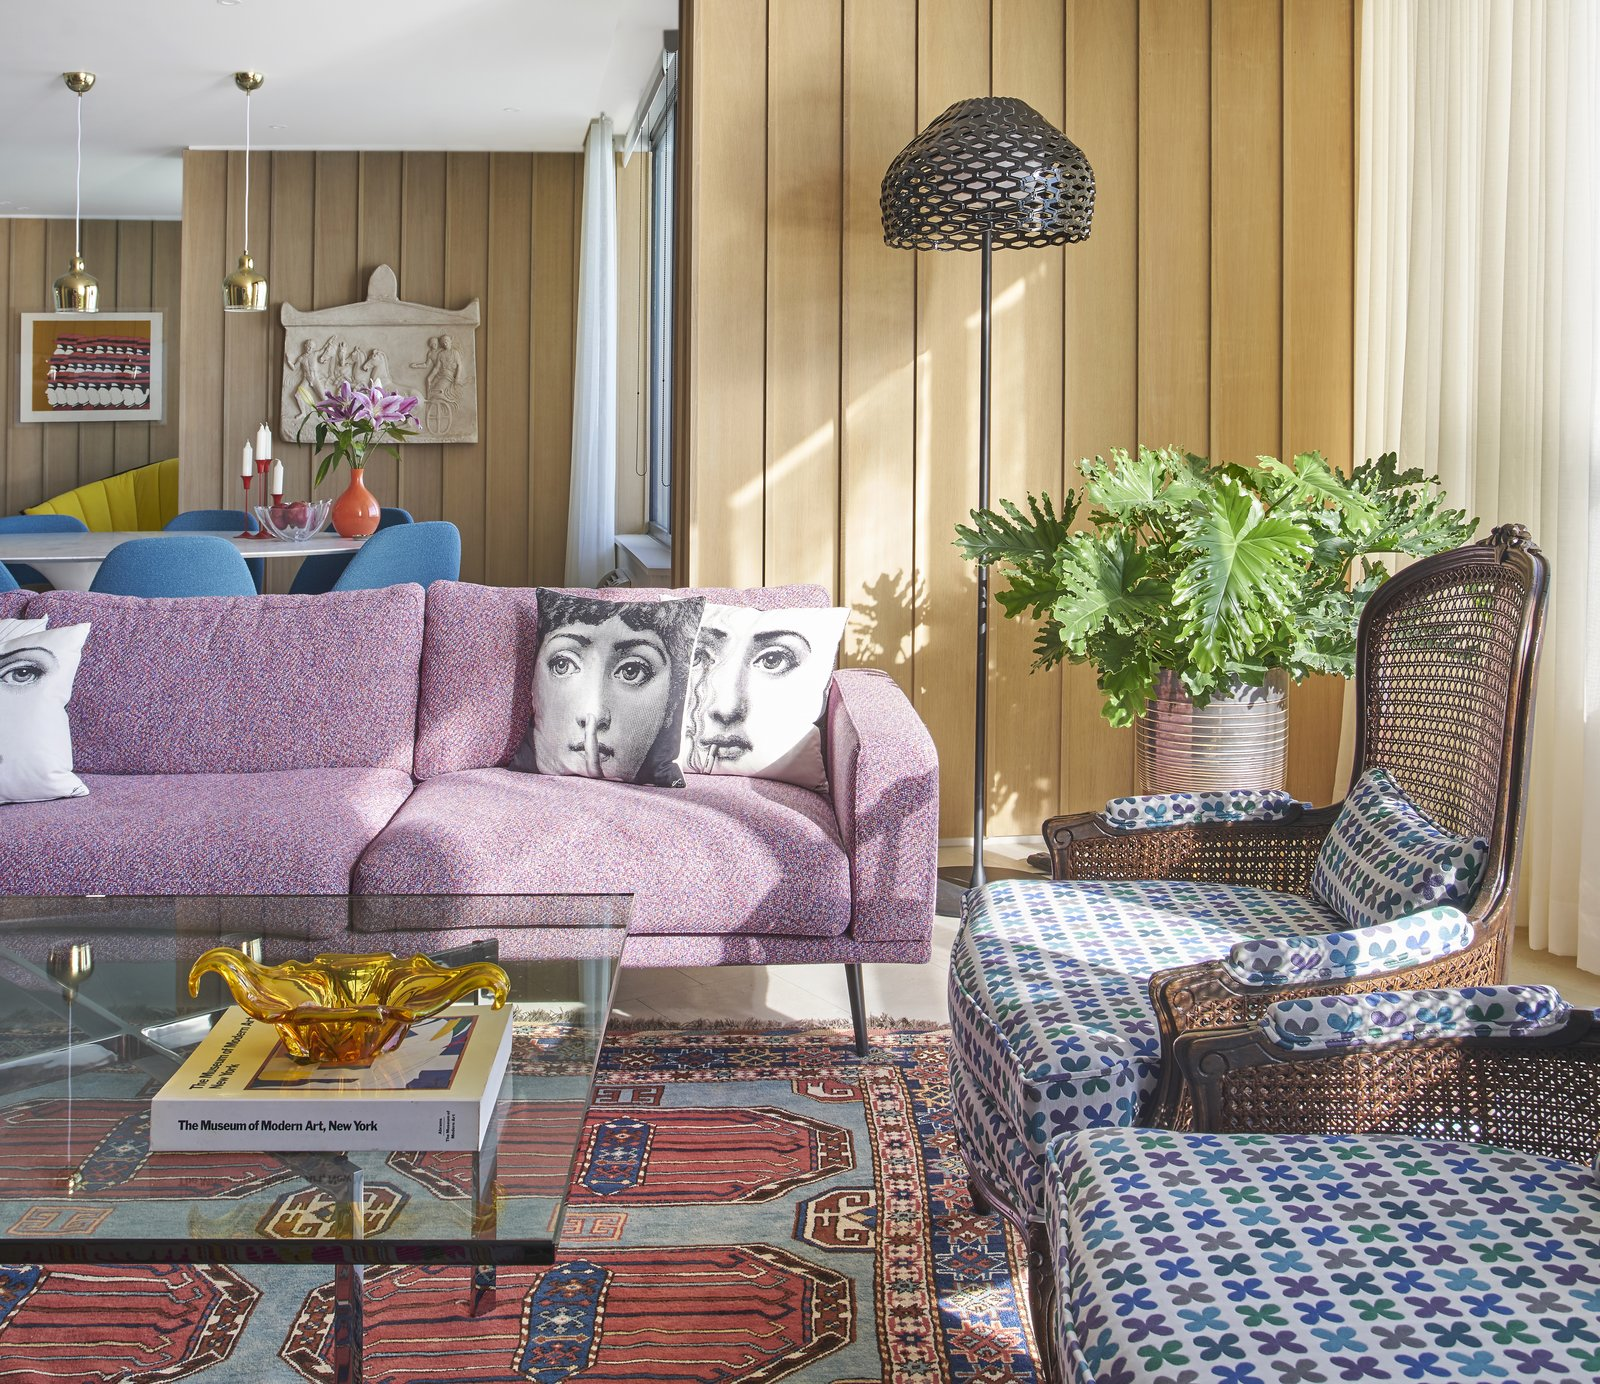 1960S Interior Design An Interior Designer Helps His Mother Turn Her 1960S Chicago